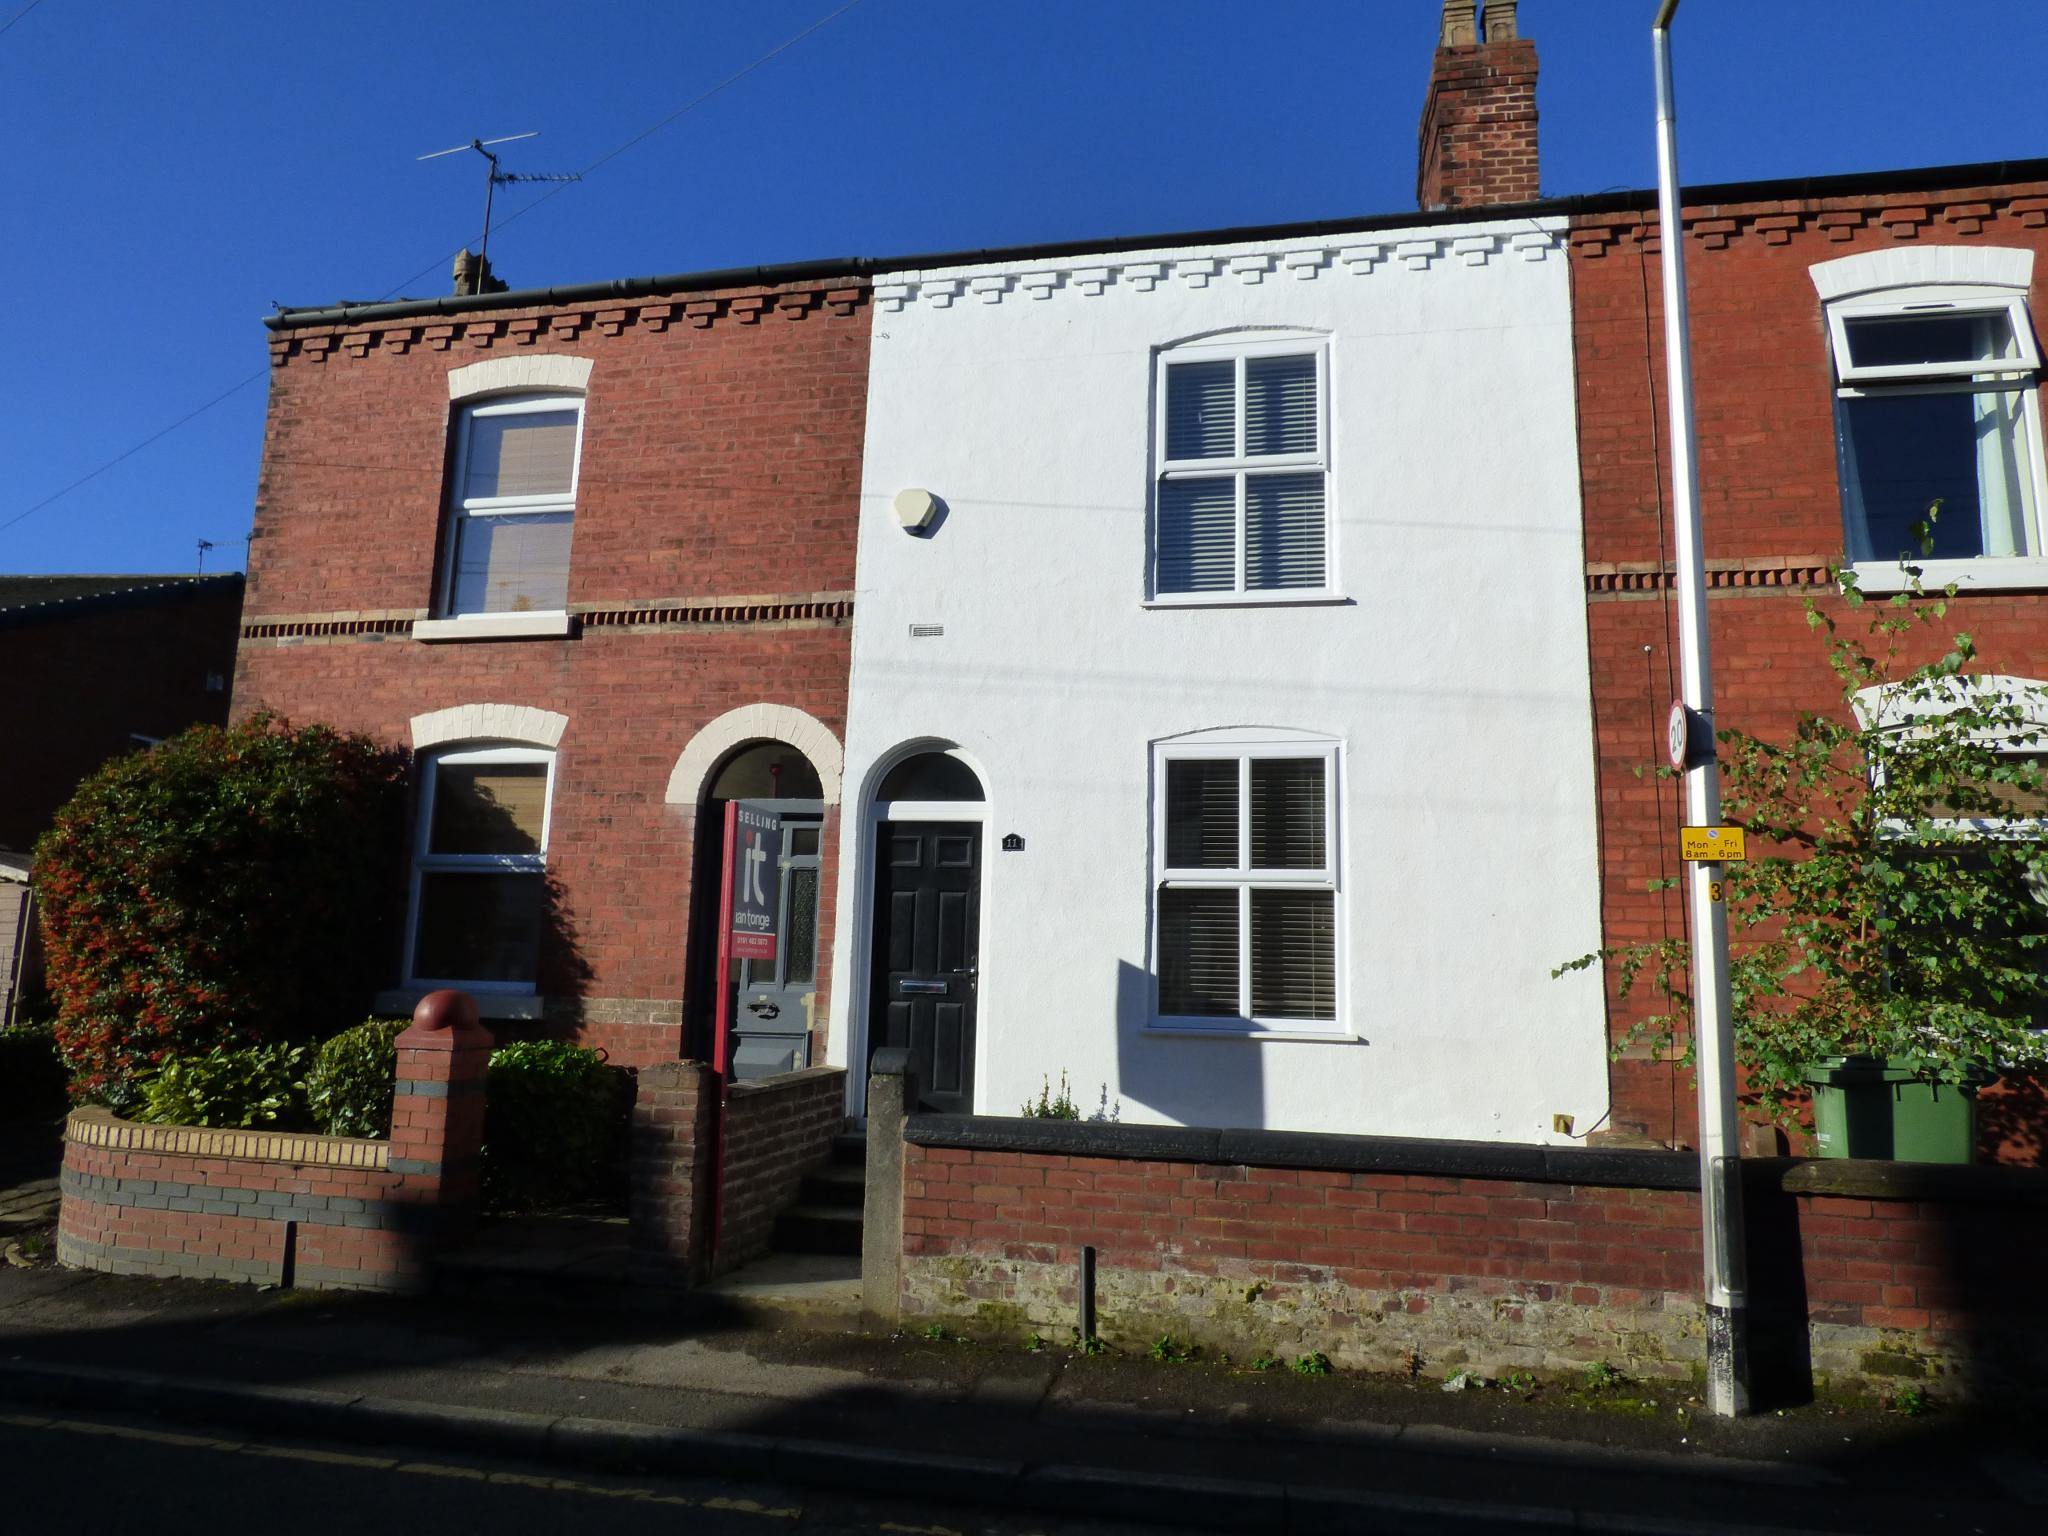 2 bedroom mid terraced house for sale in 11 napier street for Terrace house 1